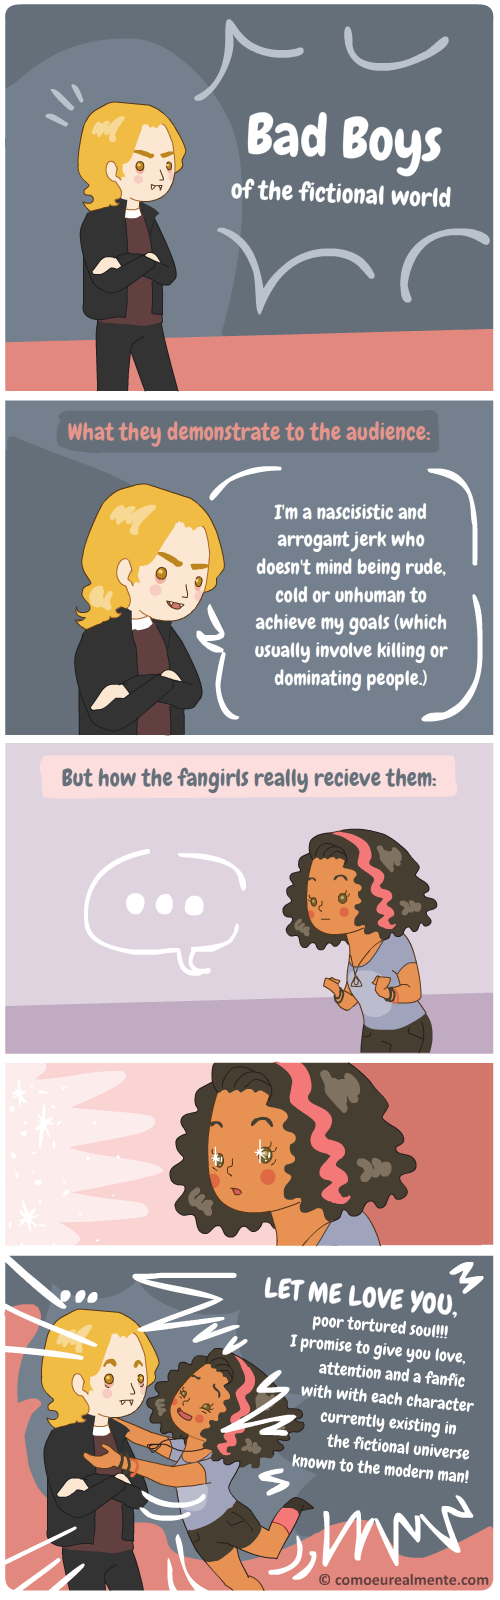 Fangirls looove the bad guys, even if they're psycho killers